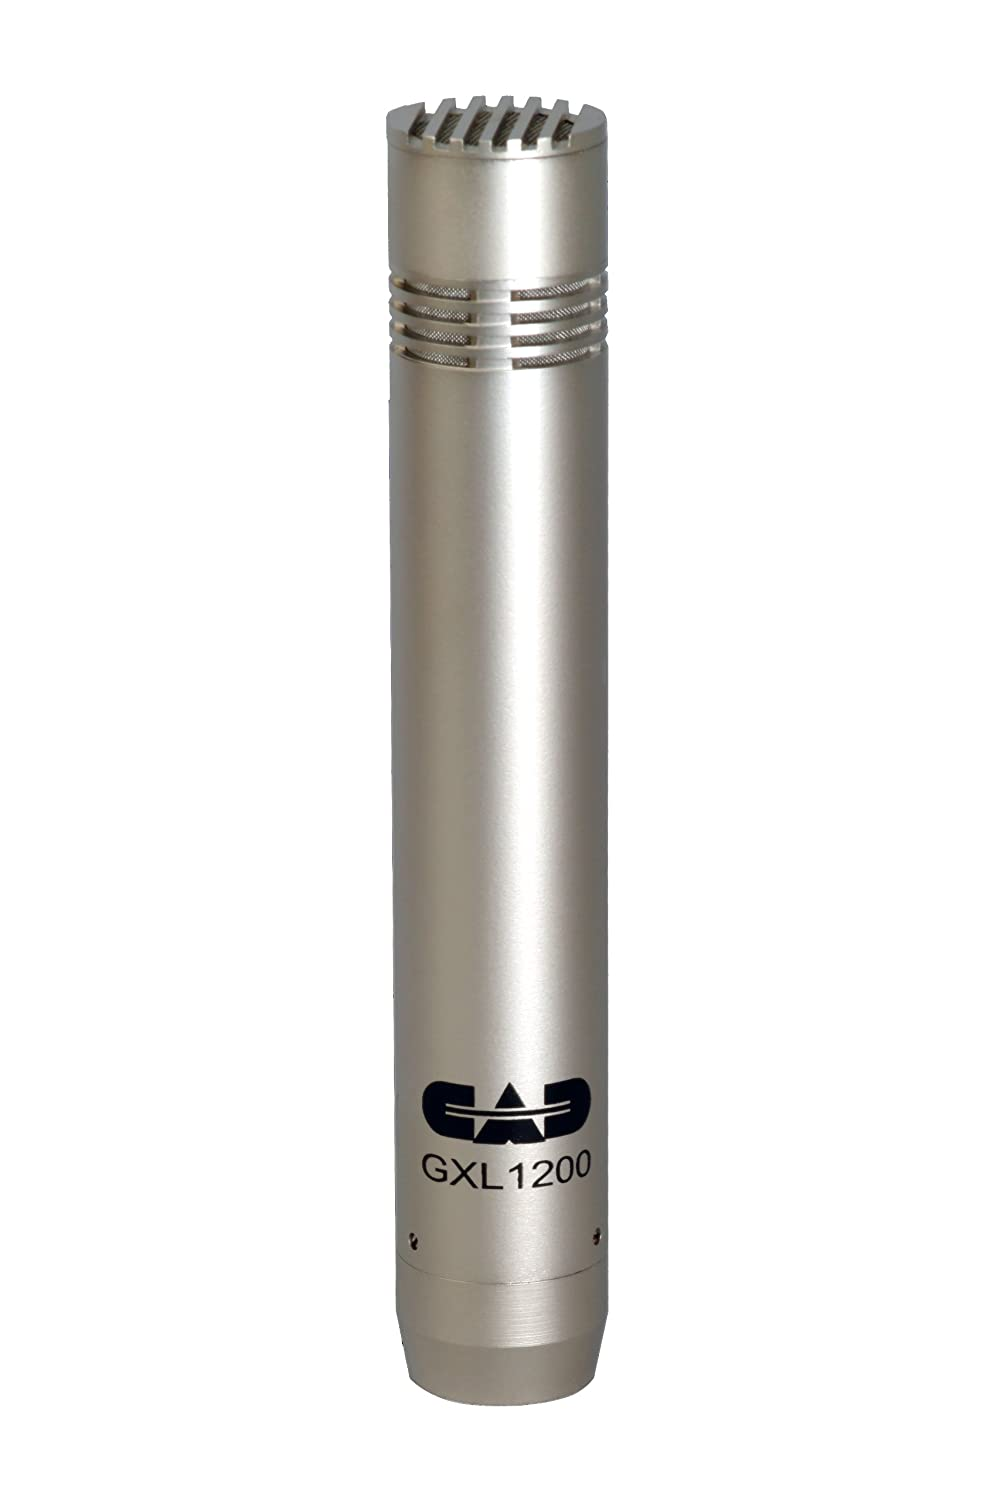 CAD Audio GXL2200BP Condenser Microphone, Cardioid AMS-GXL2200BP 80545-A